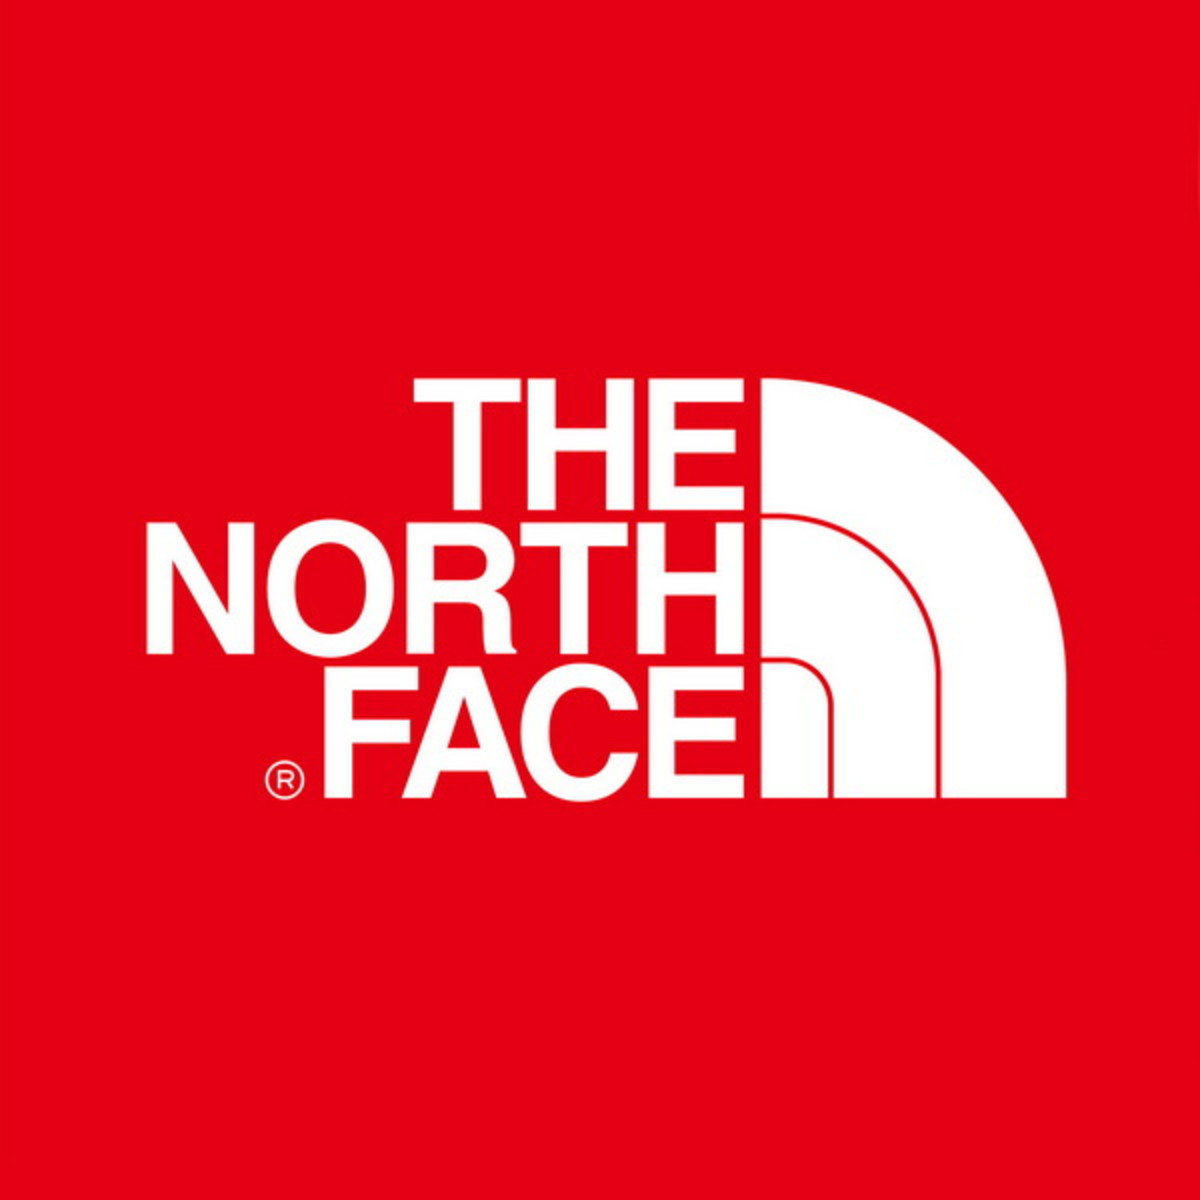 Where and how to buy Authentic Vintage The North Face Gear